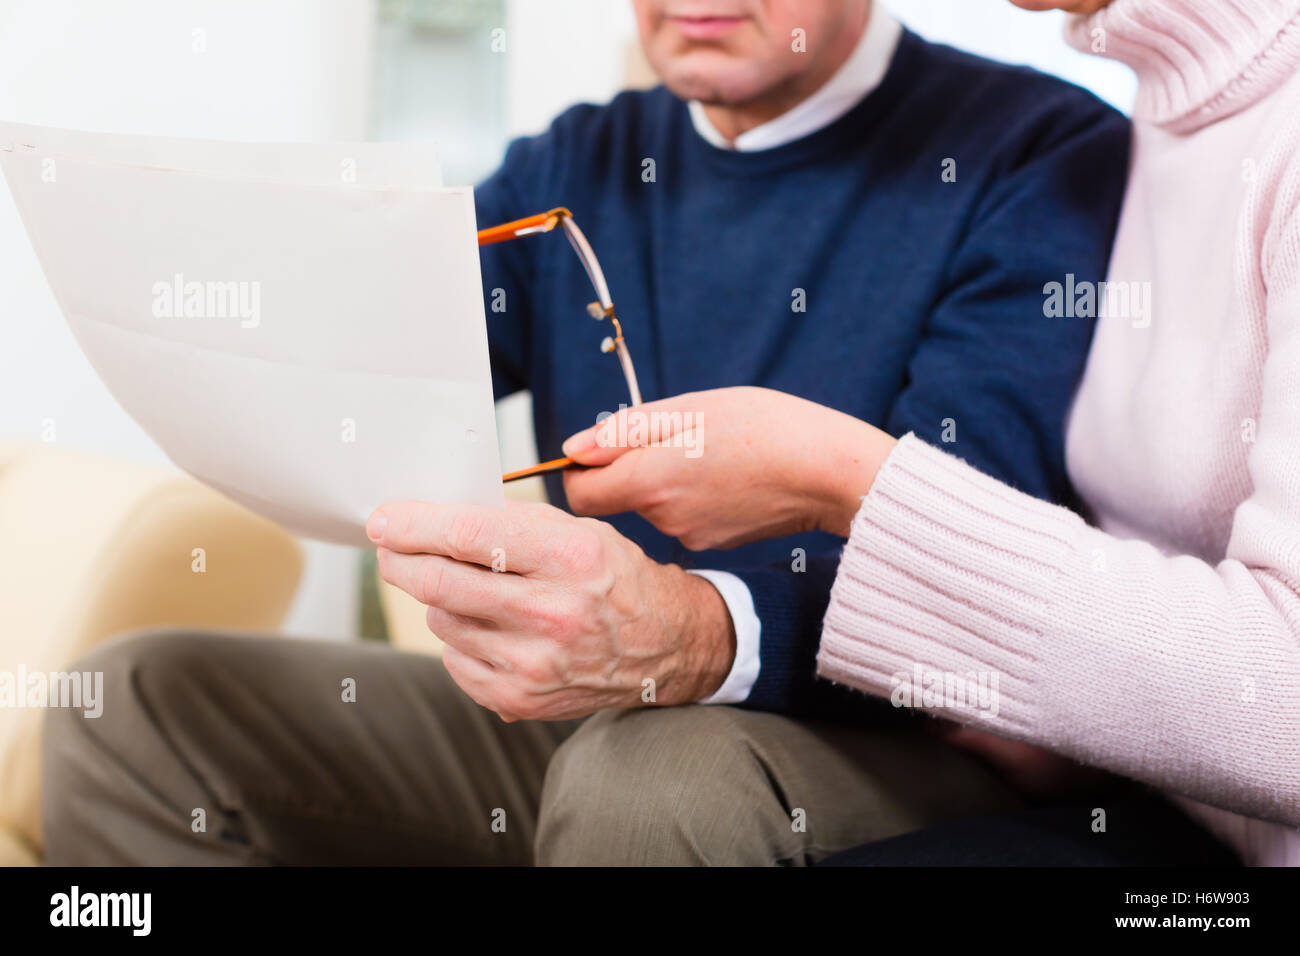 write, wrote, writing, writes, anger, resentment, annoy, data, informations, - Stock Image